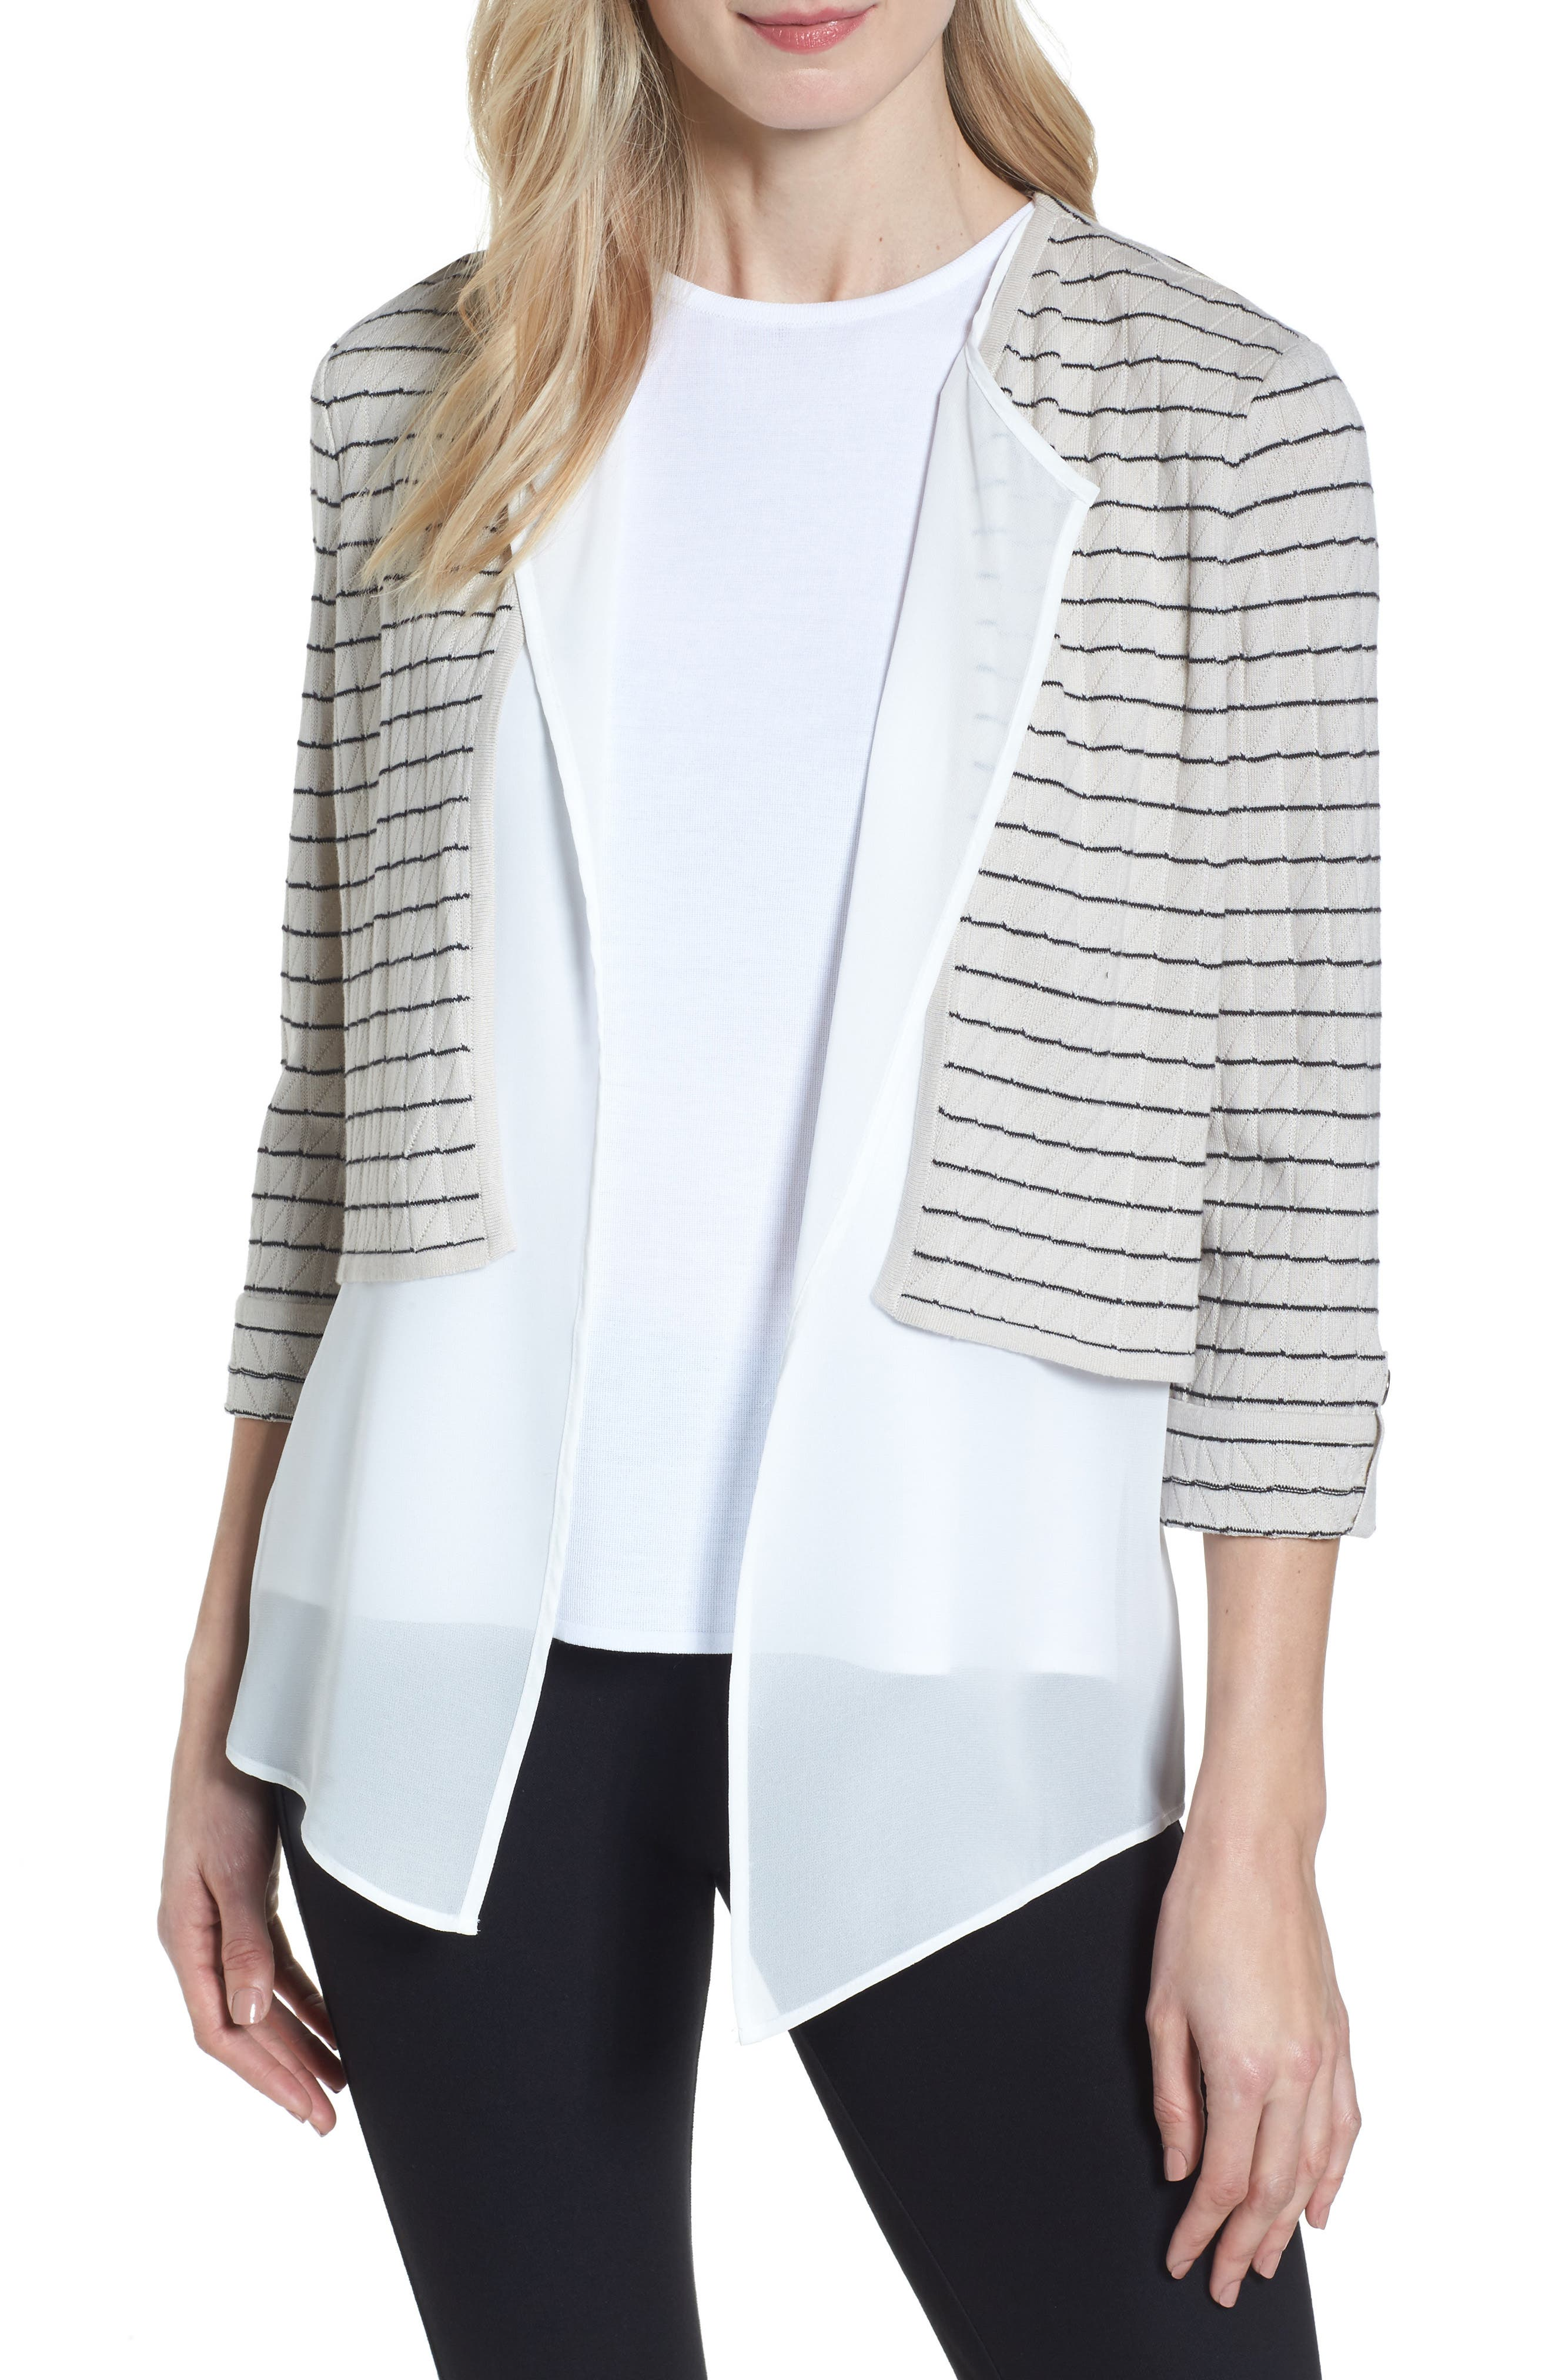 Layered Look Knit Jacket,                         Main,                         color, Almond Beige/ Black/ White